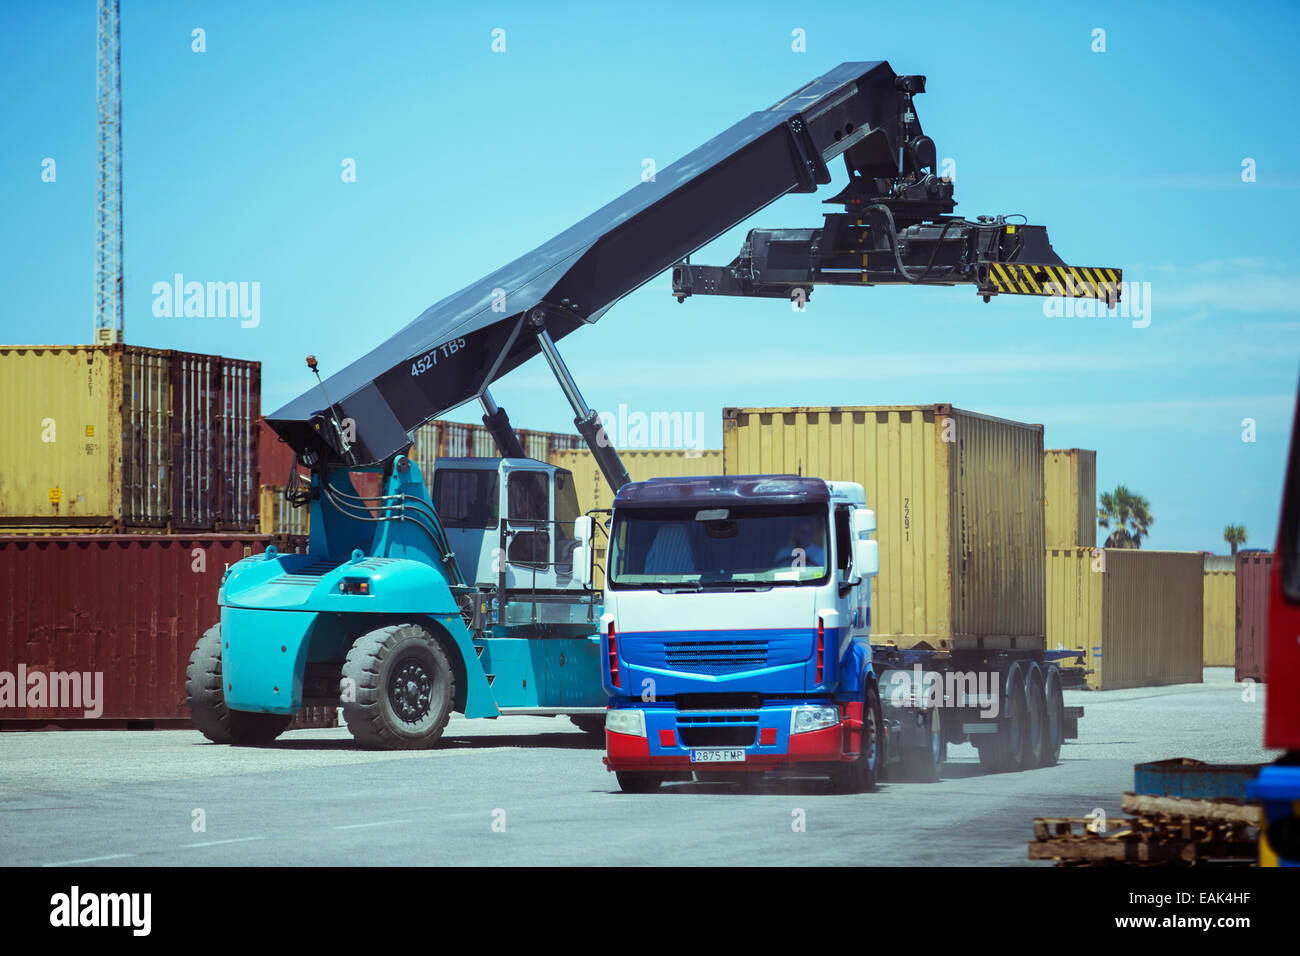 Crane near cargo container on truck - Stock Image